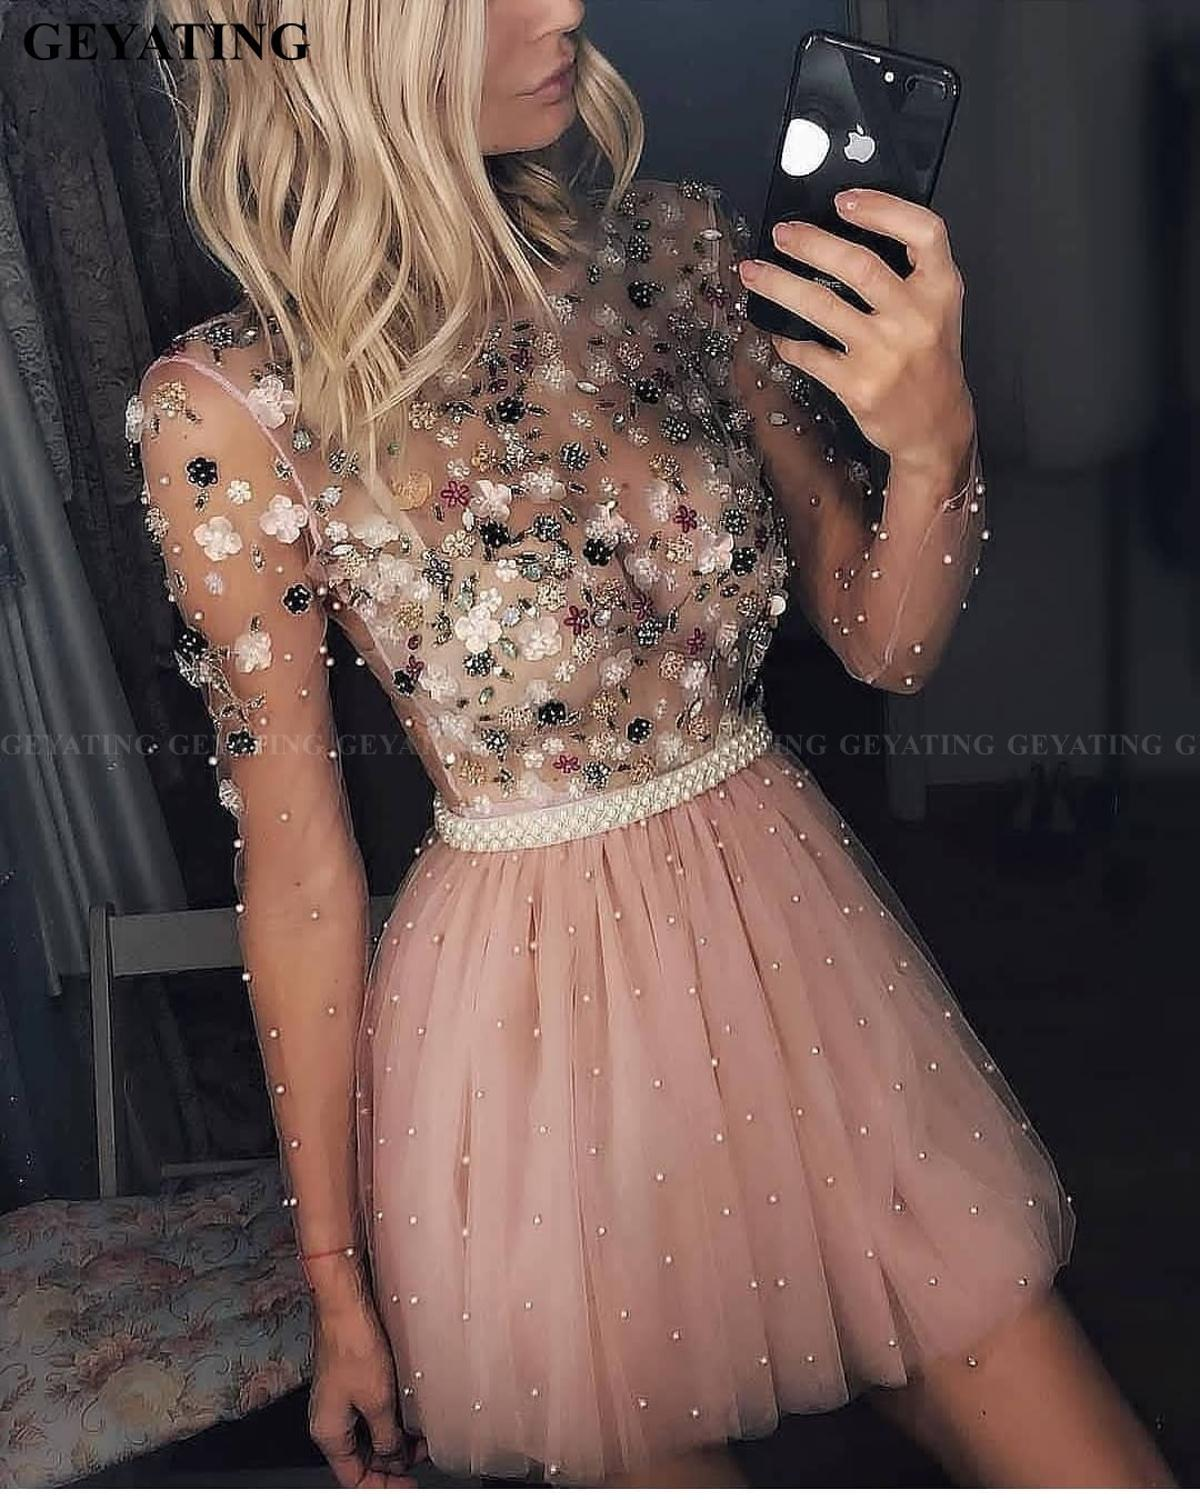 Sweet Long Sleeves Blush Pink Short Homecoming Dresses 2020 Vestidos De 15 Cortos 3D Flowers Pearls Tulle Cute Cocktail Dress